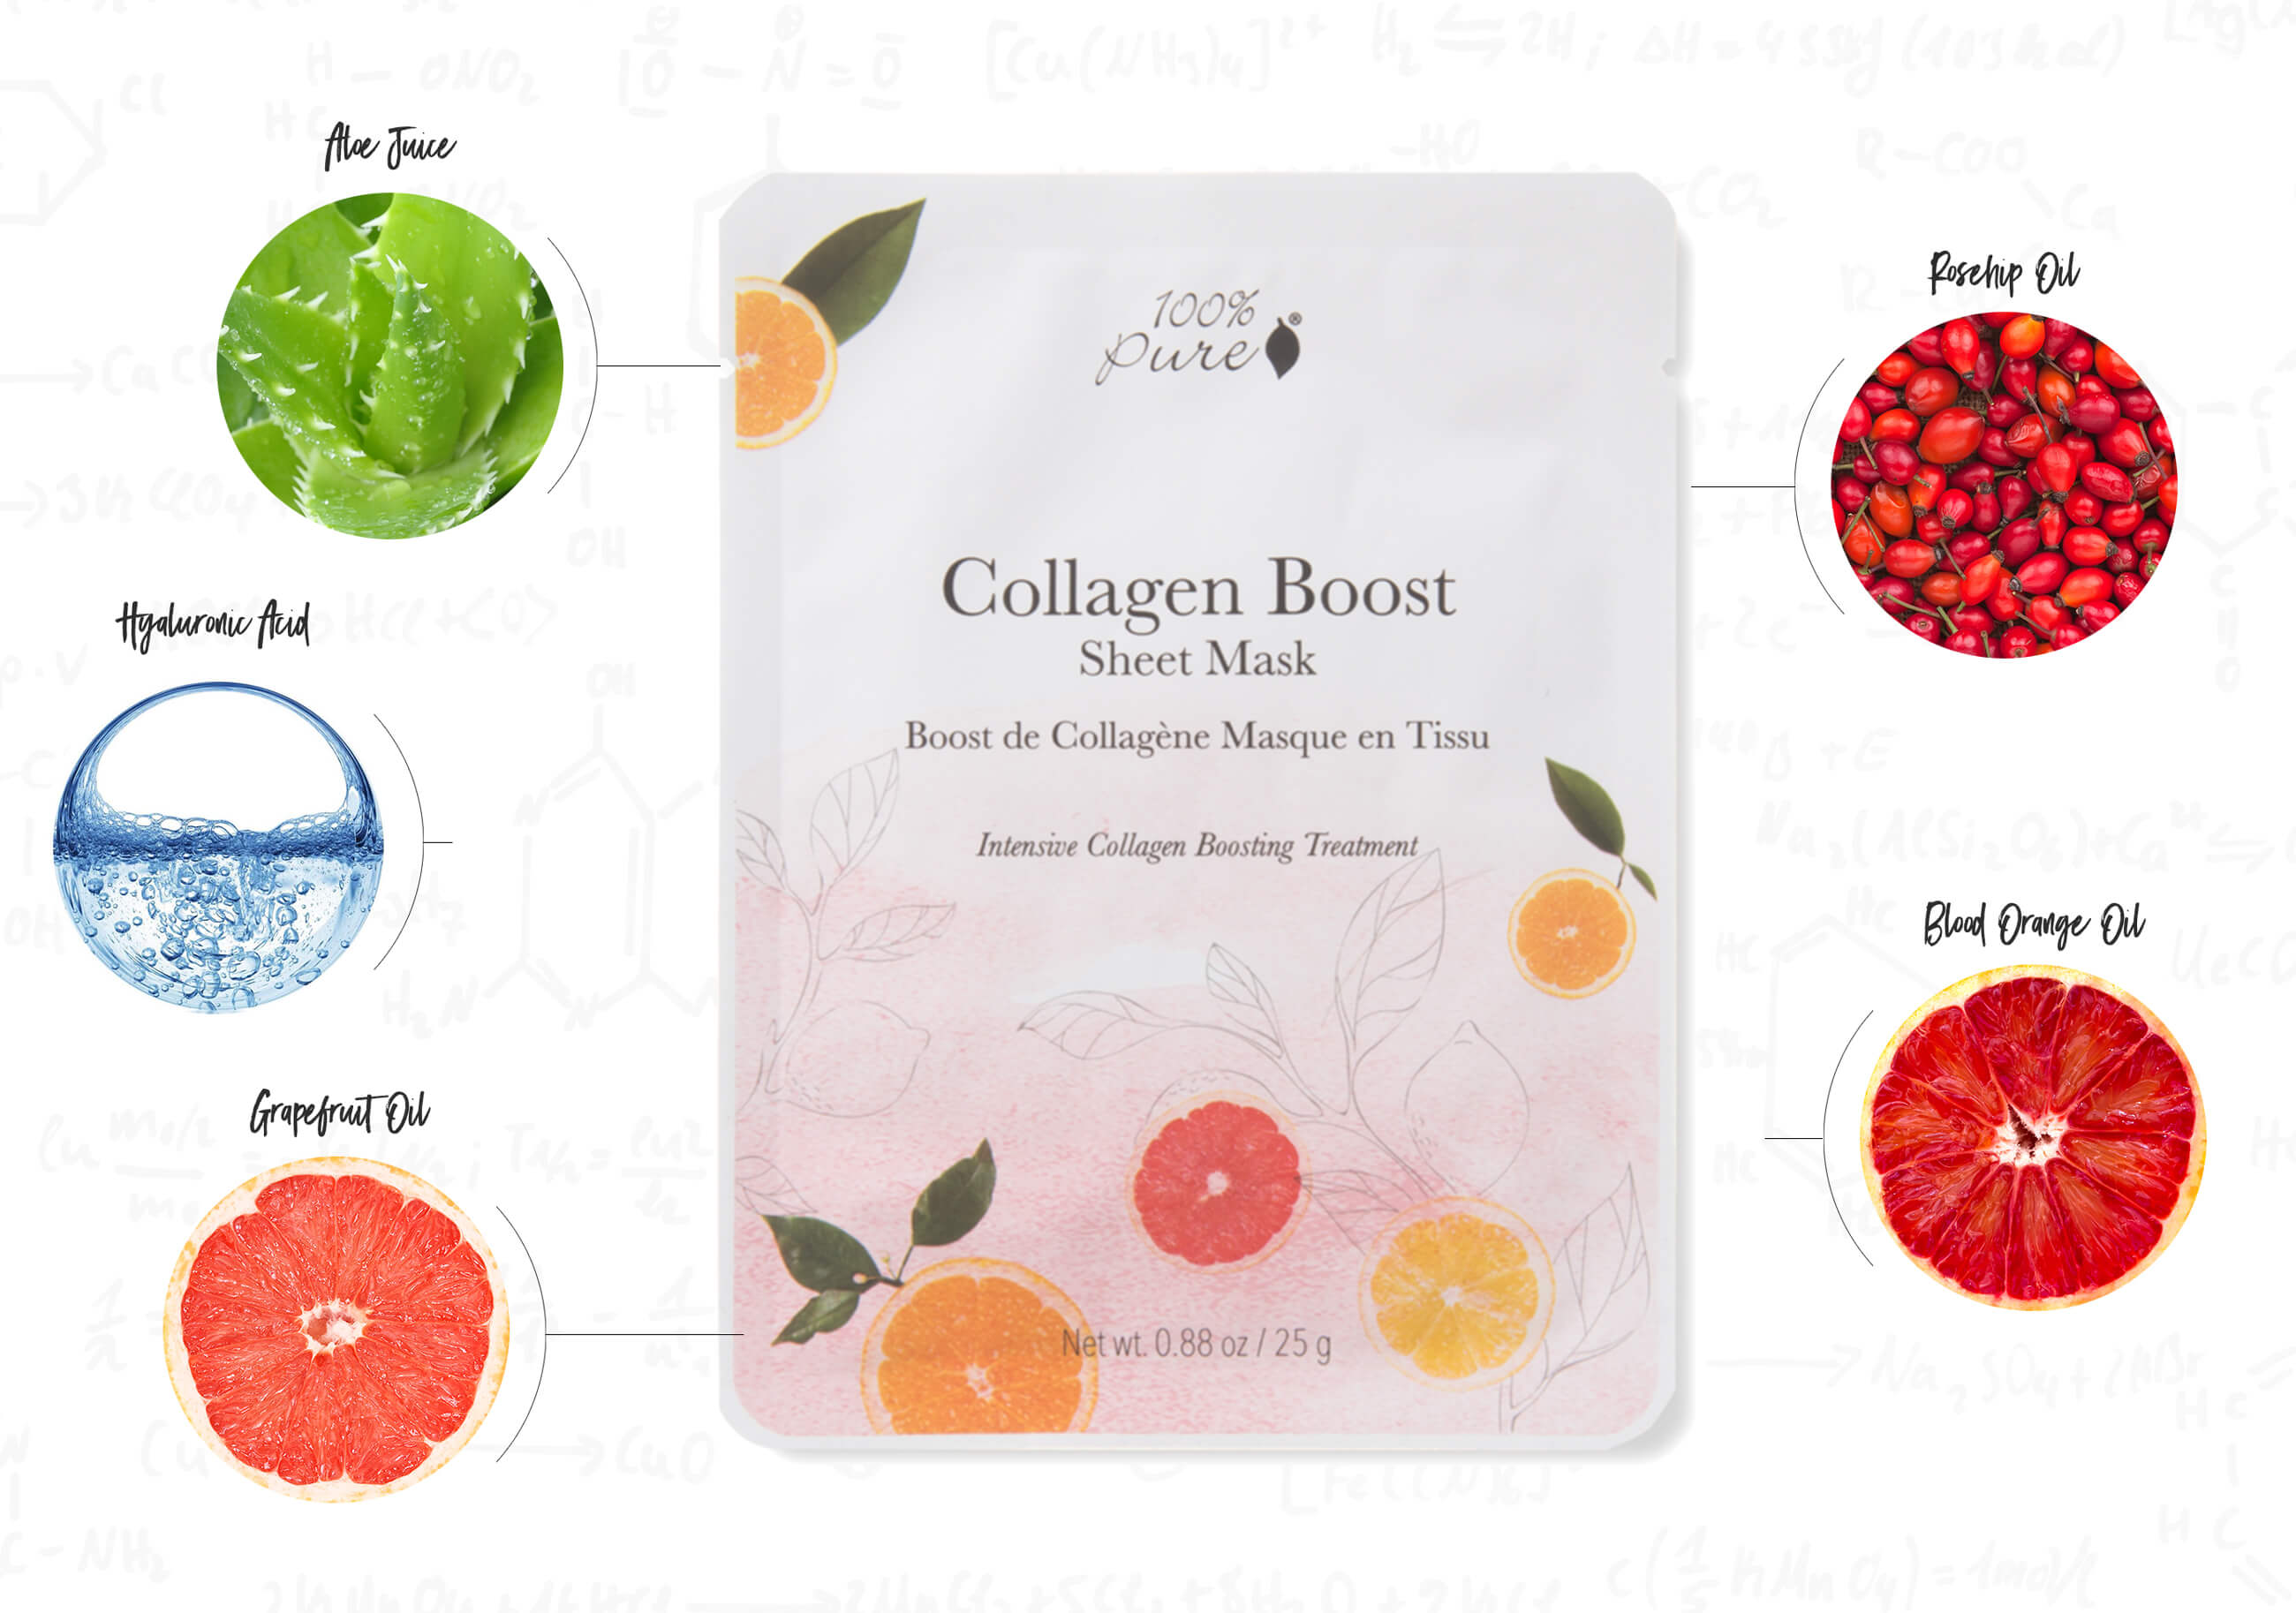 Collagen Boost Sheet Mask